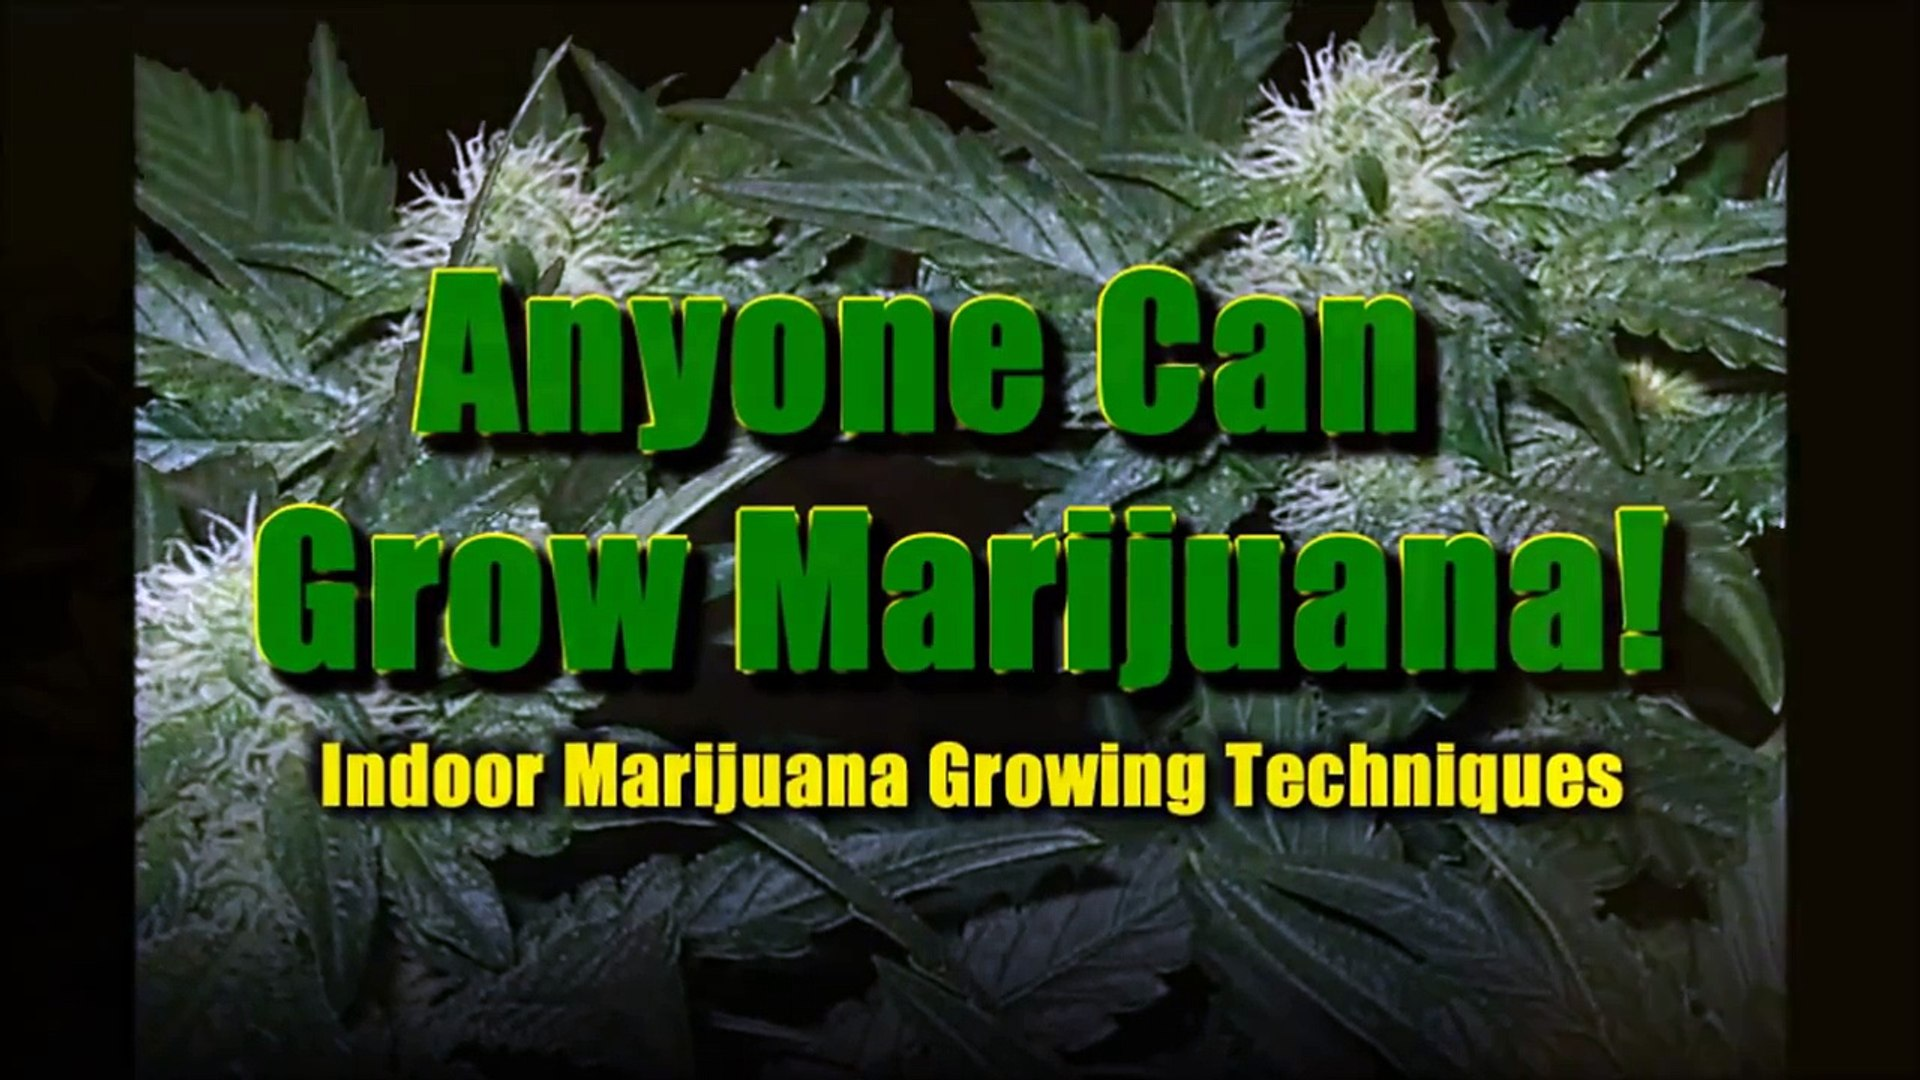 Sexing Marijuana Plants - Male/Female - Sexing Marijuana Plants 101